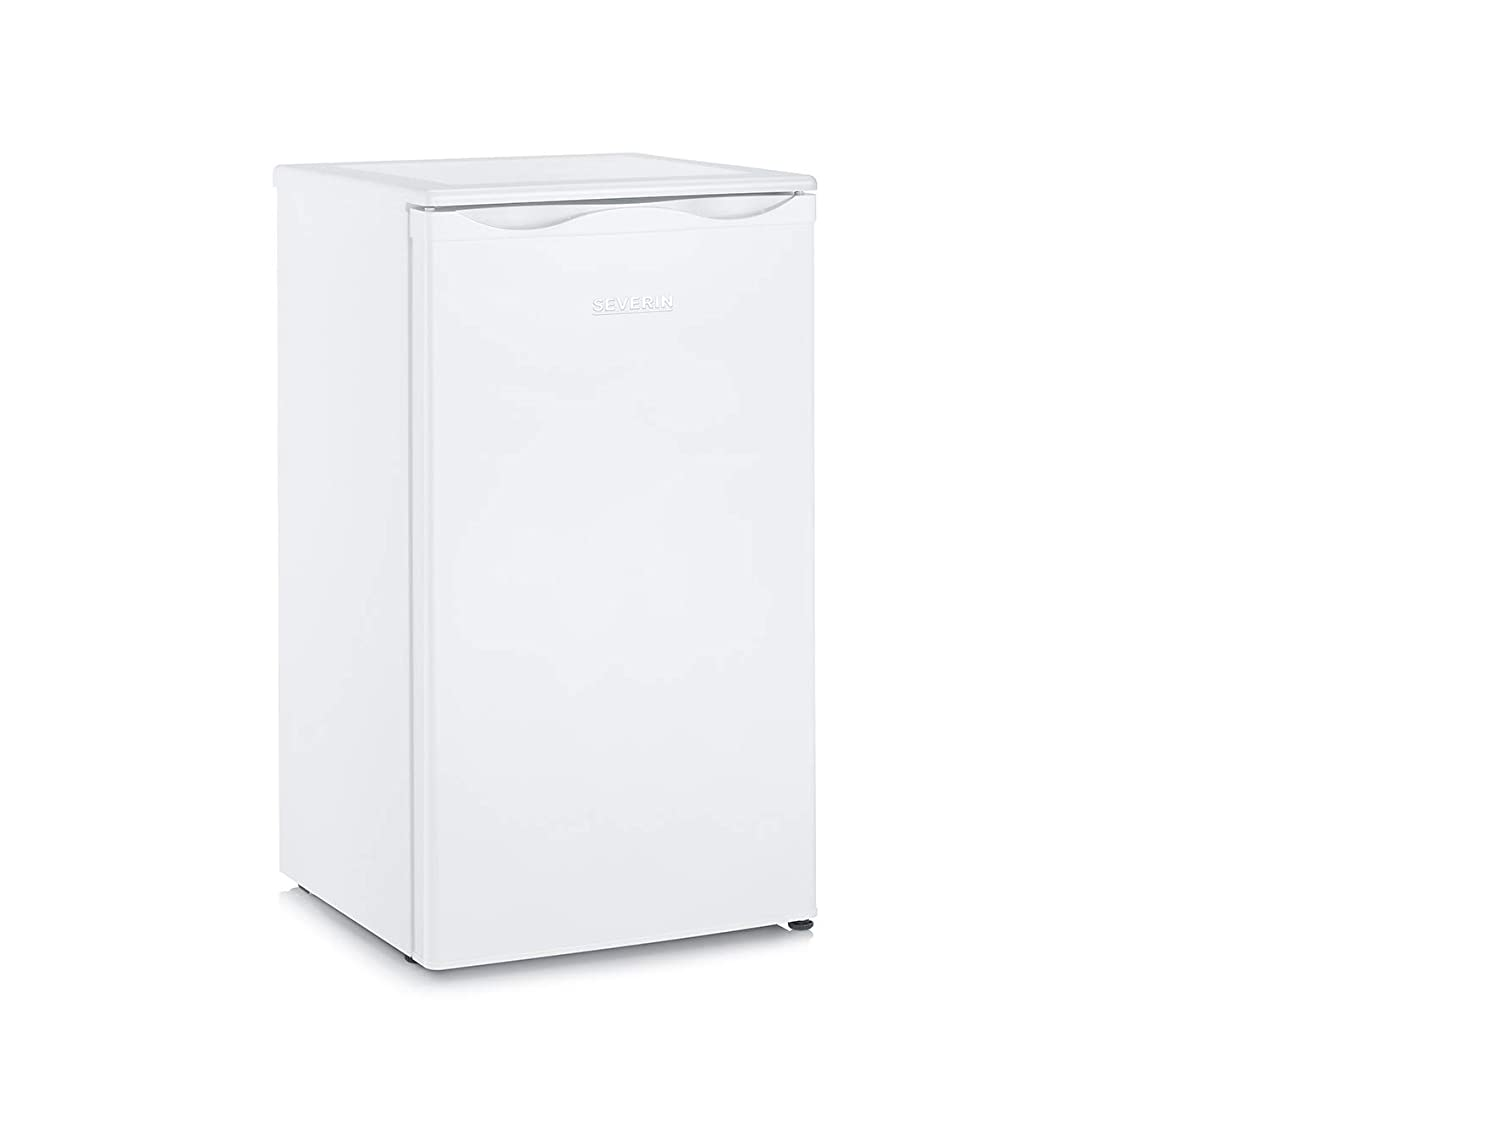 SEVERIN KS 8824 Mini-Frigorífico, 84 L, 41 dB, Blanco: Amazon.es ...